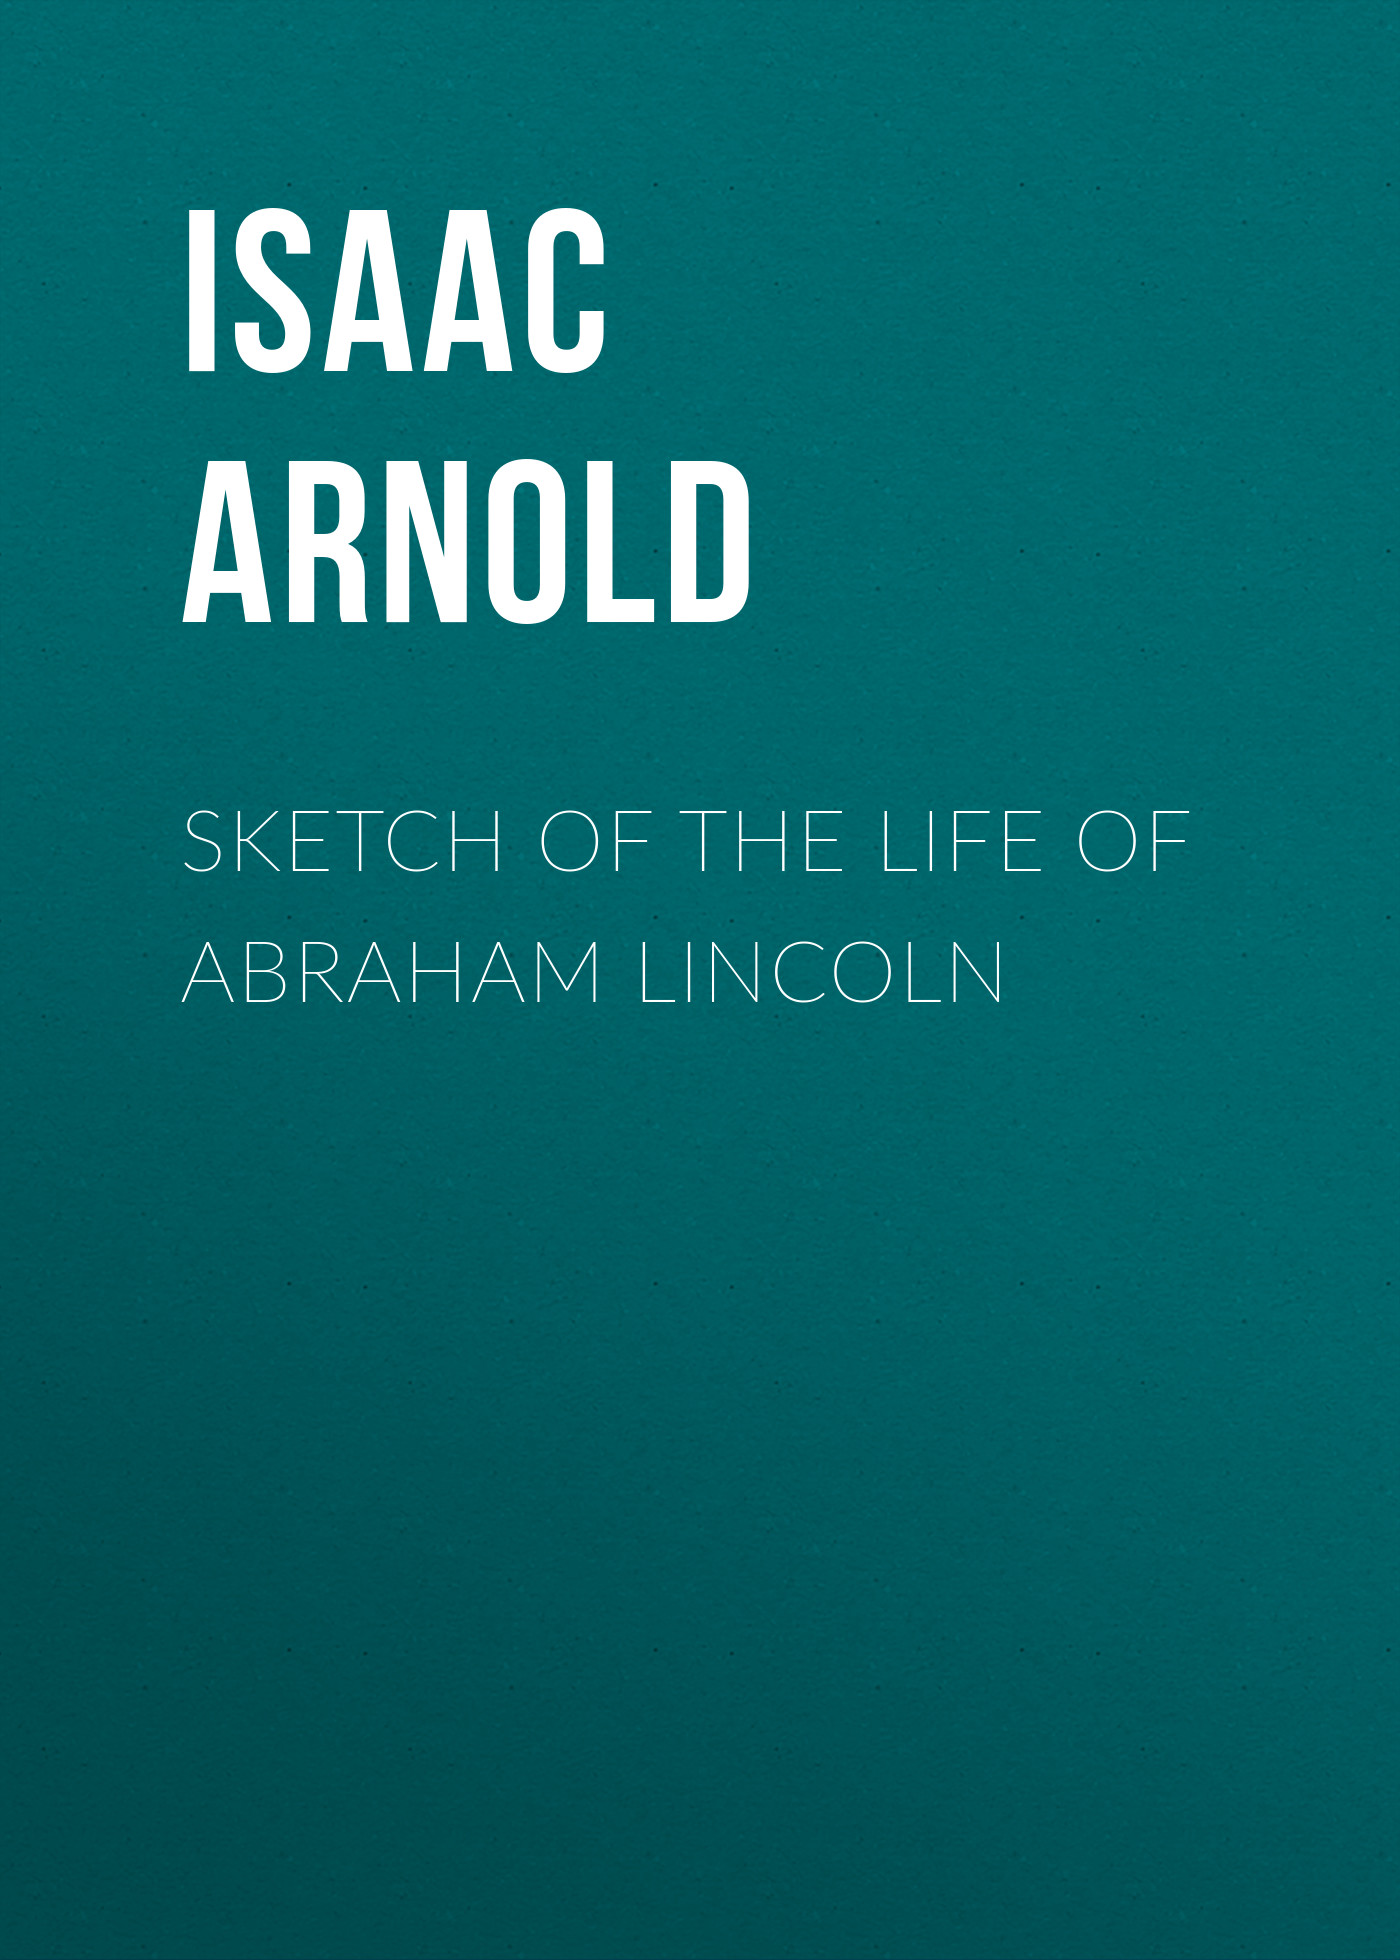 Arnold Isaac N. Sketch of the life of Abraham Lincoln kummer frederic arnold the ivory snuff box